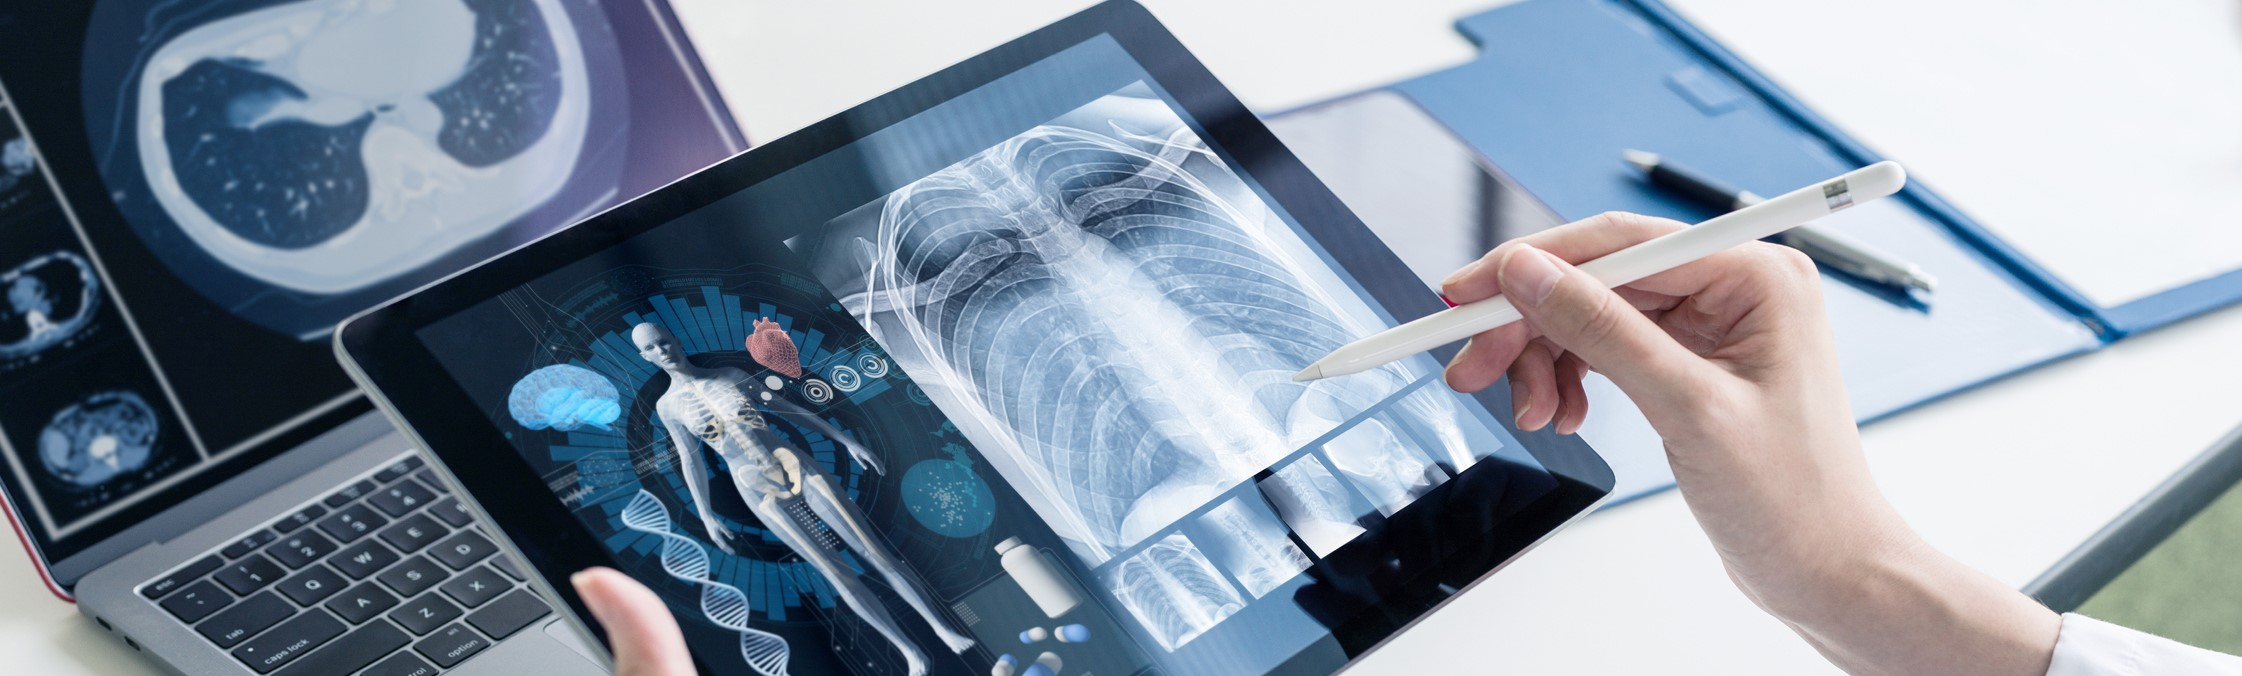 Medical technology concept. Med tech. Electronic medical record.